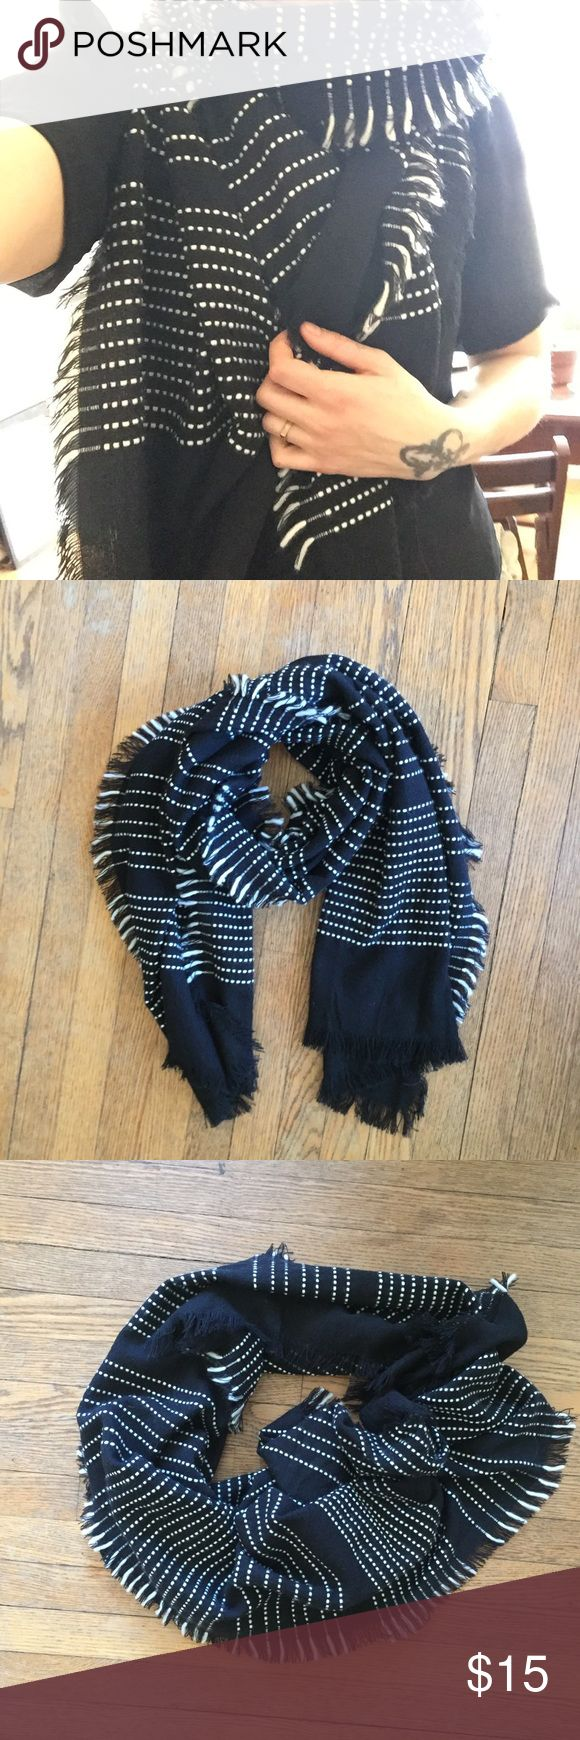 🌘 COZY textured blanket scarf by GAP 🌒 Black and white textured blanket scarf. Very cozy, warm and versatile. Winter 2018, only worn once. GAP Accessories Scarves & Wraps